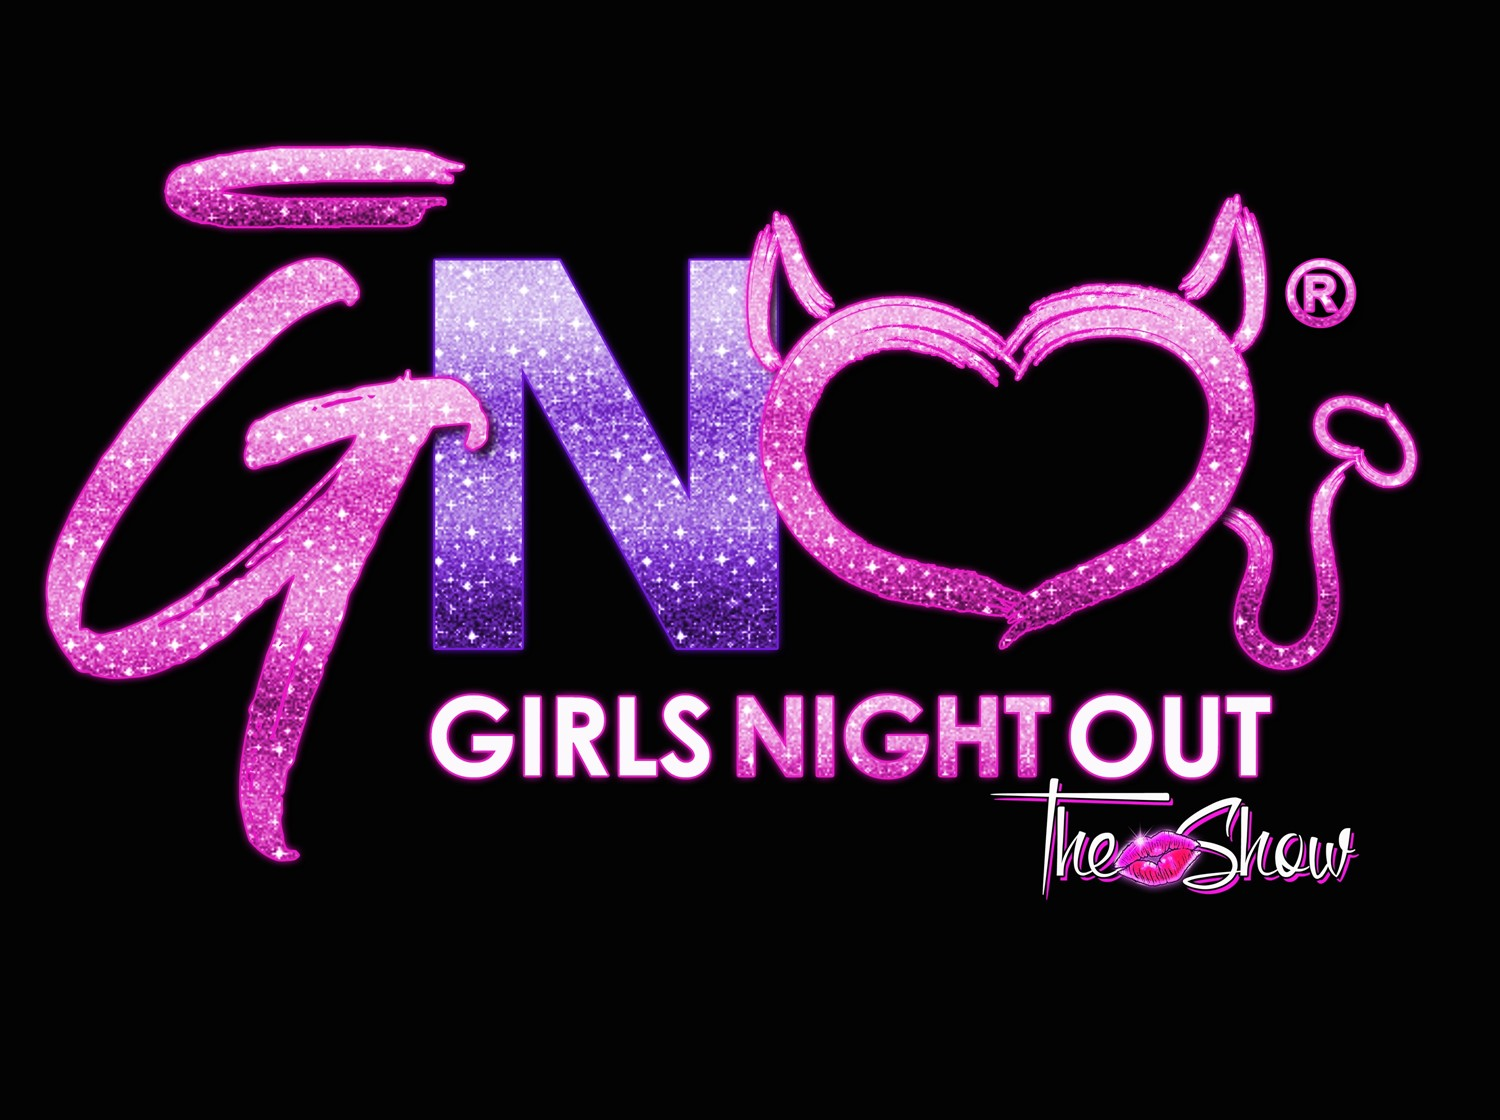 The Coach House Bar & Grill (21+) Schaumburg, IL on abr. 16, 20:00@The Coach House Bar & Grill - Buy tickets and Get information on Girls Night Out the Show tickets.girlsnightouttheshow.com